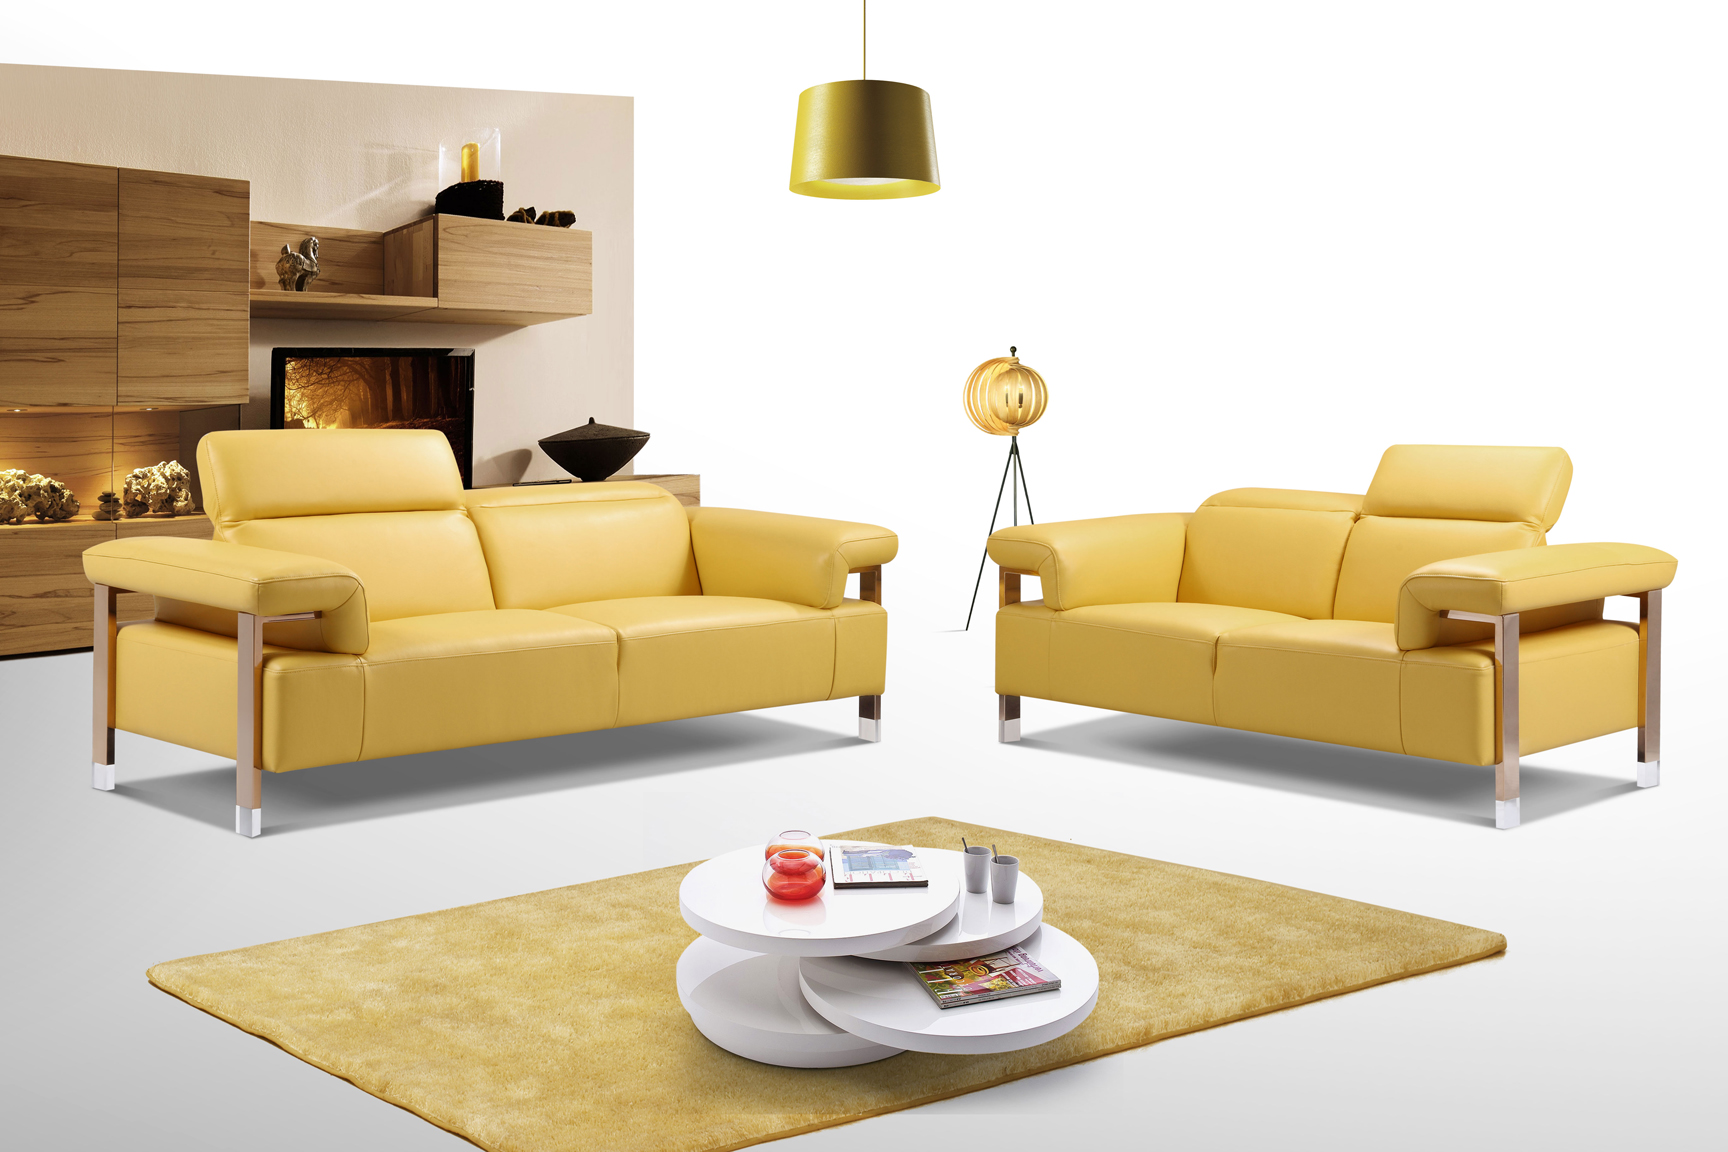 Brilliant Canary Yellow Three Piece Top Grain Leather Living Room Set Interior Design Ideas Tzicisoteloinfo